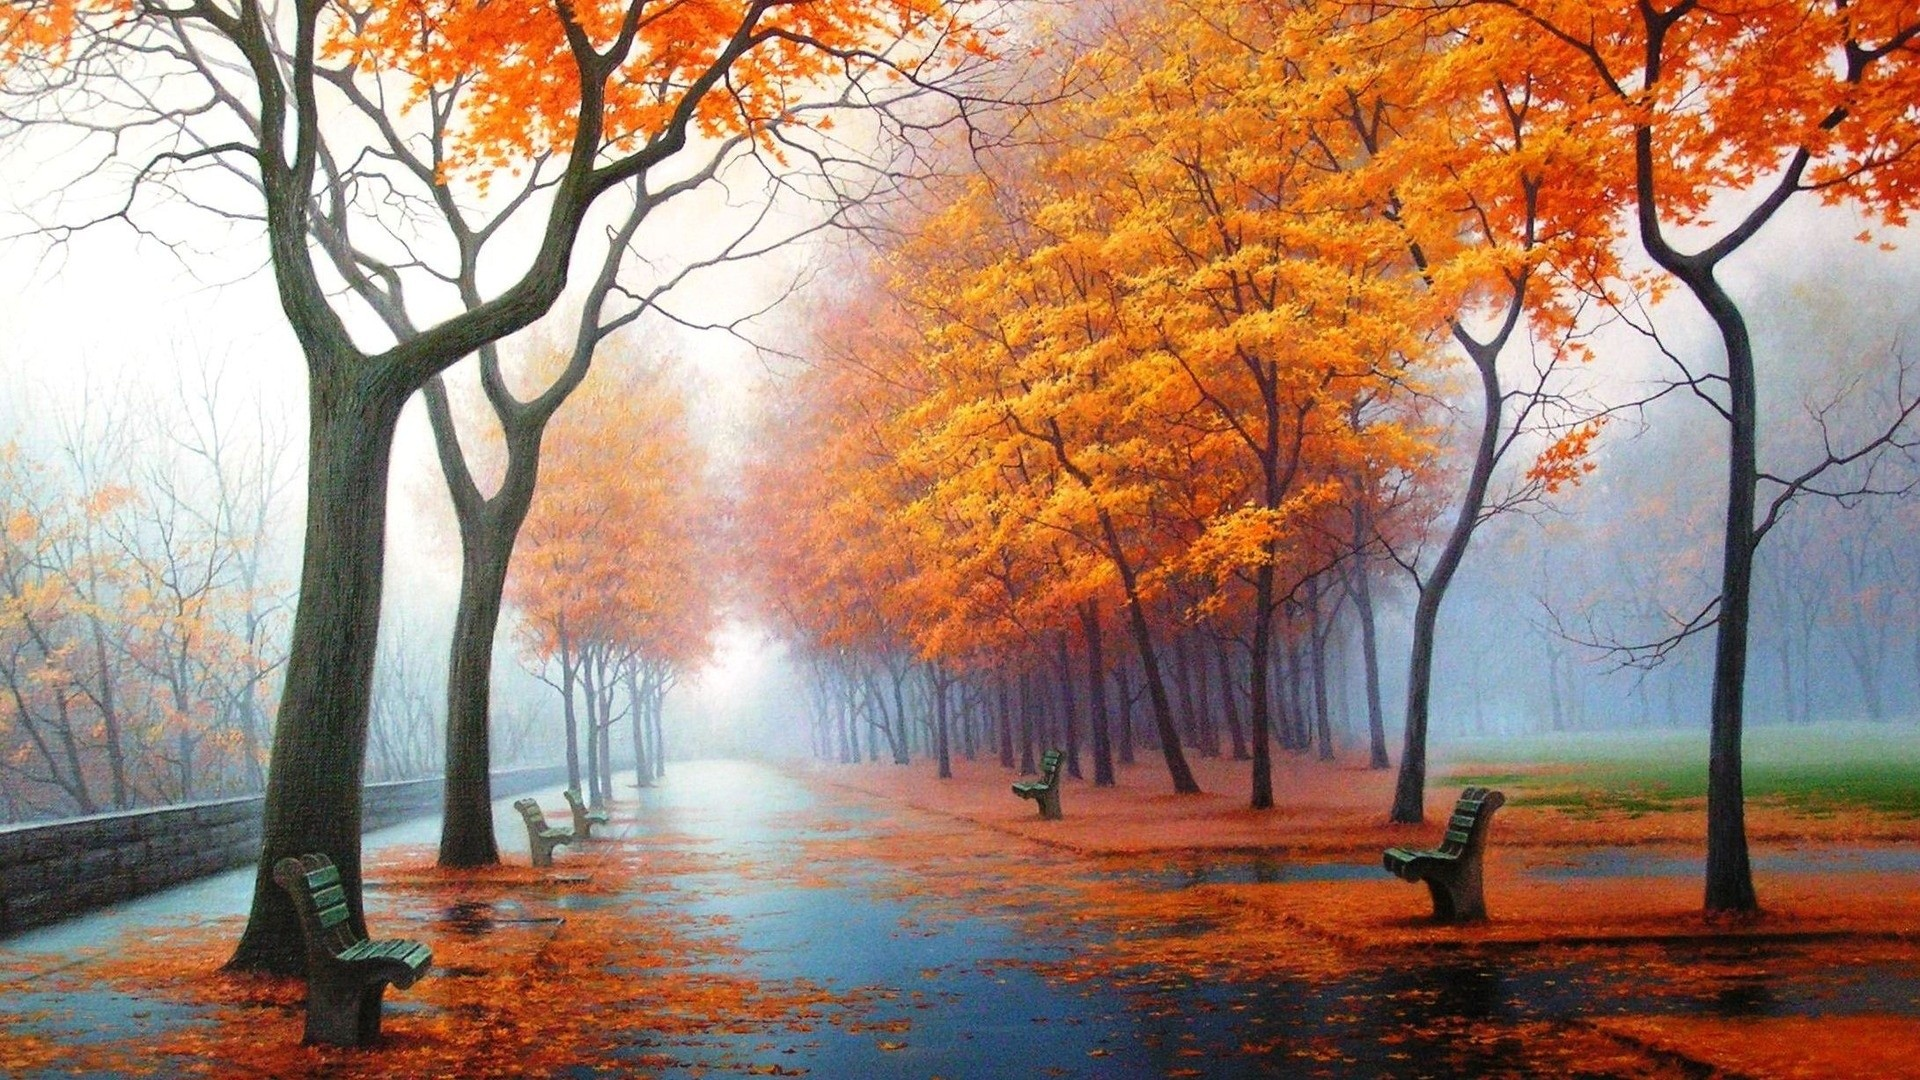 fall wallpaper for desktop ·① download free full hd wallpapers for